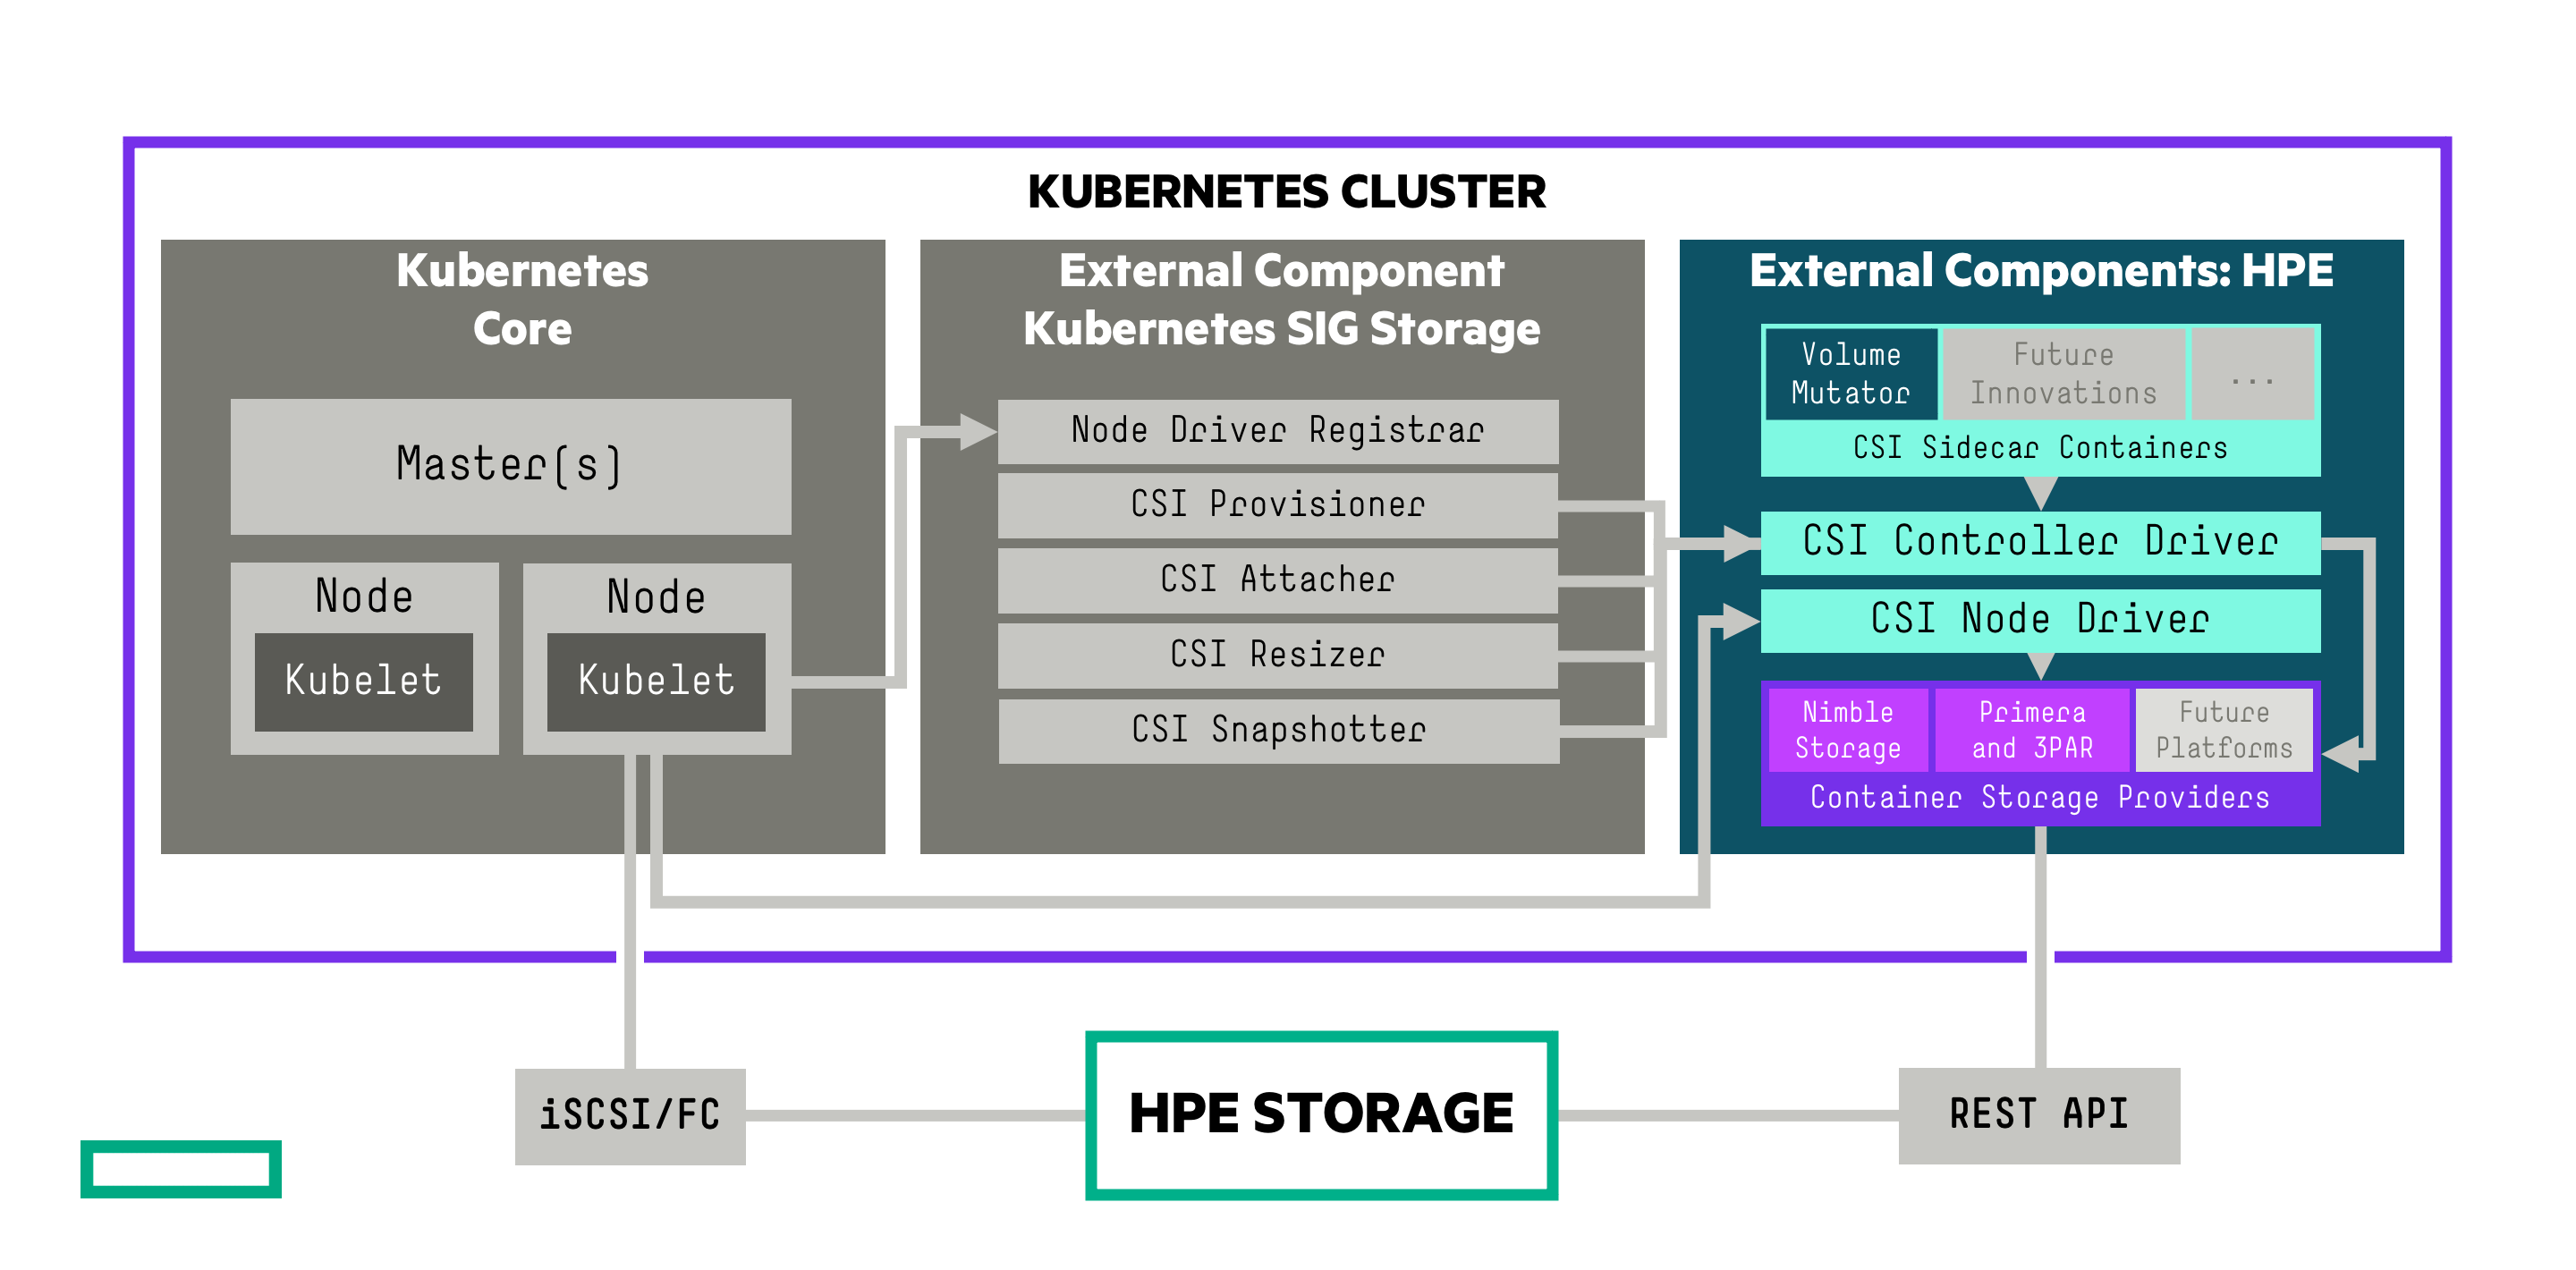 hpe-csi-driver-overview